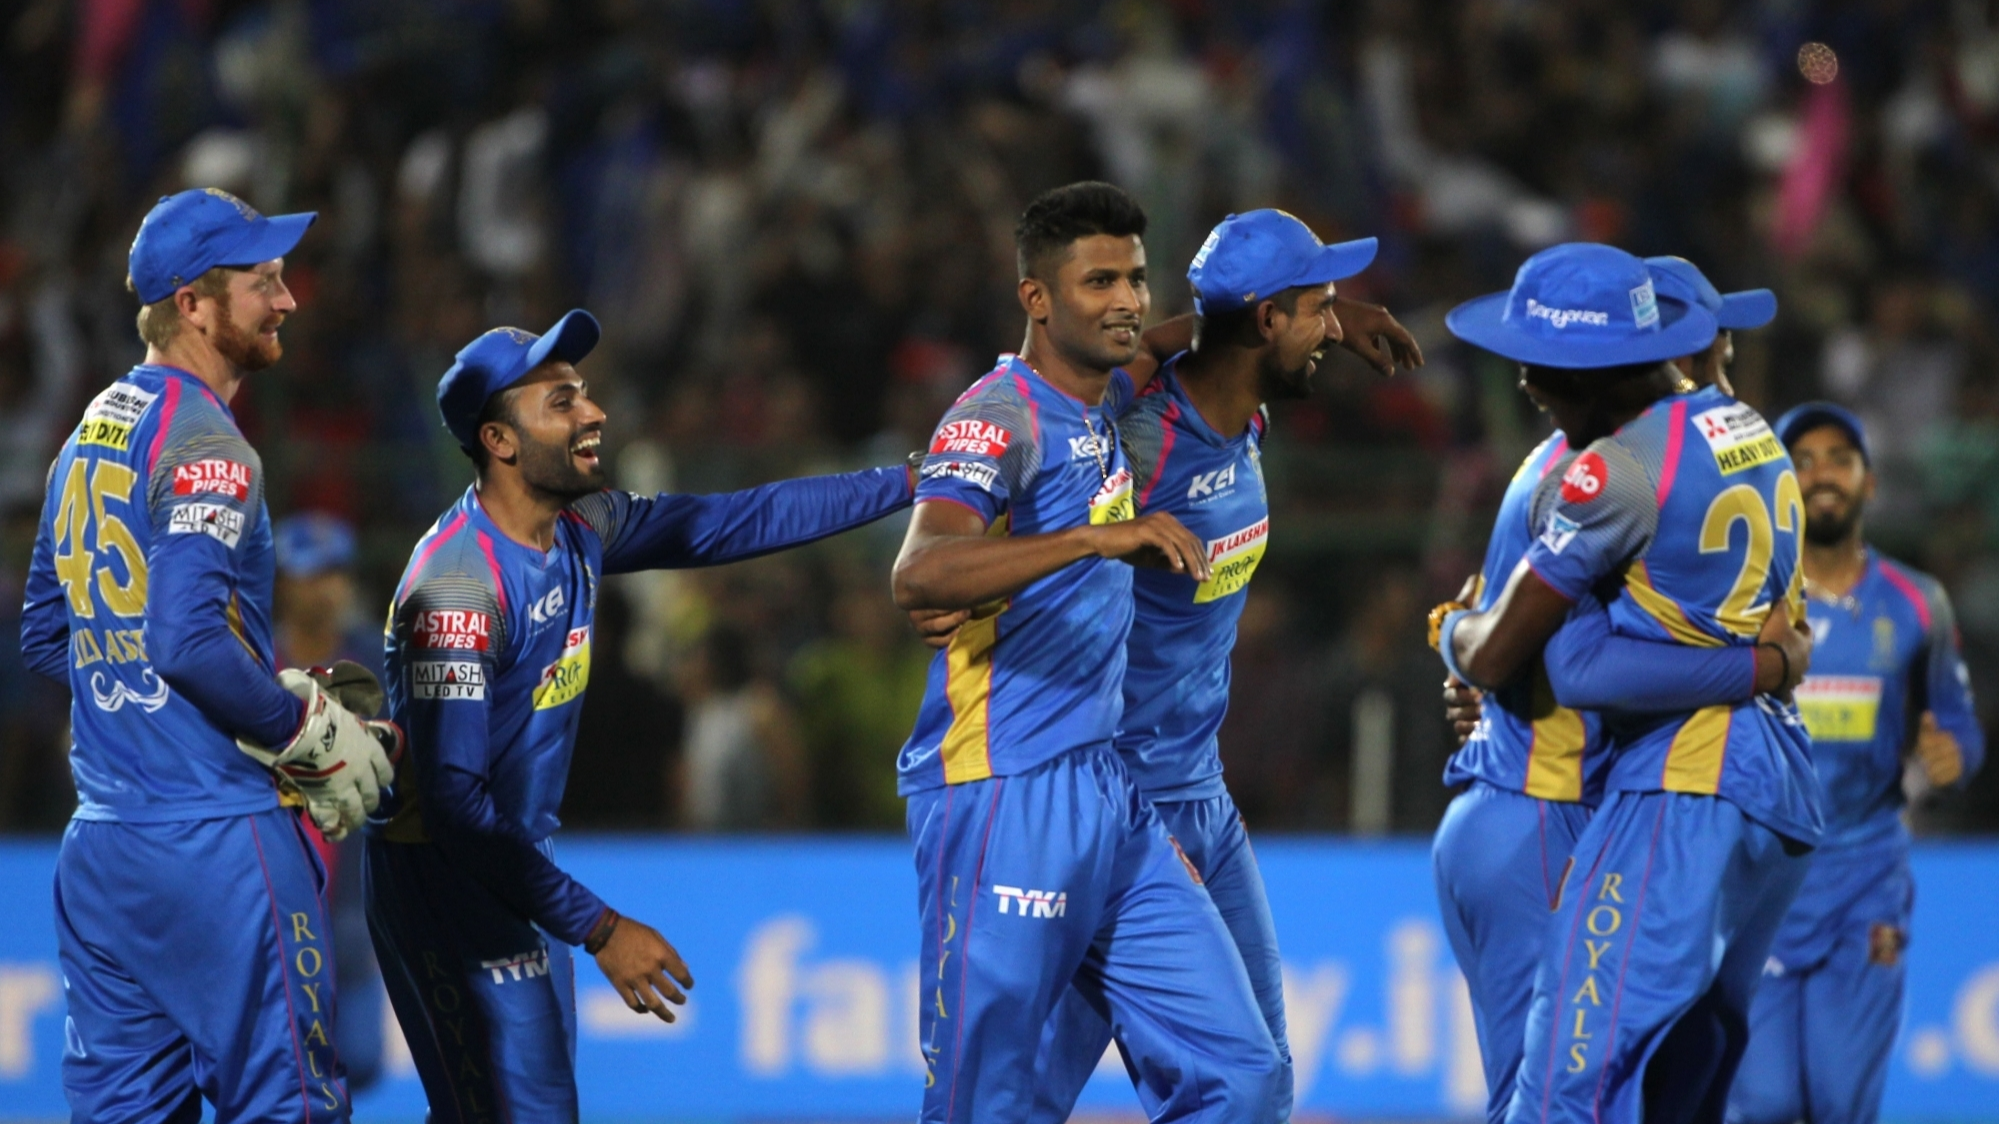 IPL 2018 : Match 53, RR vs RCB - Statistical Highlights